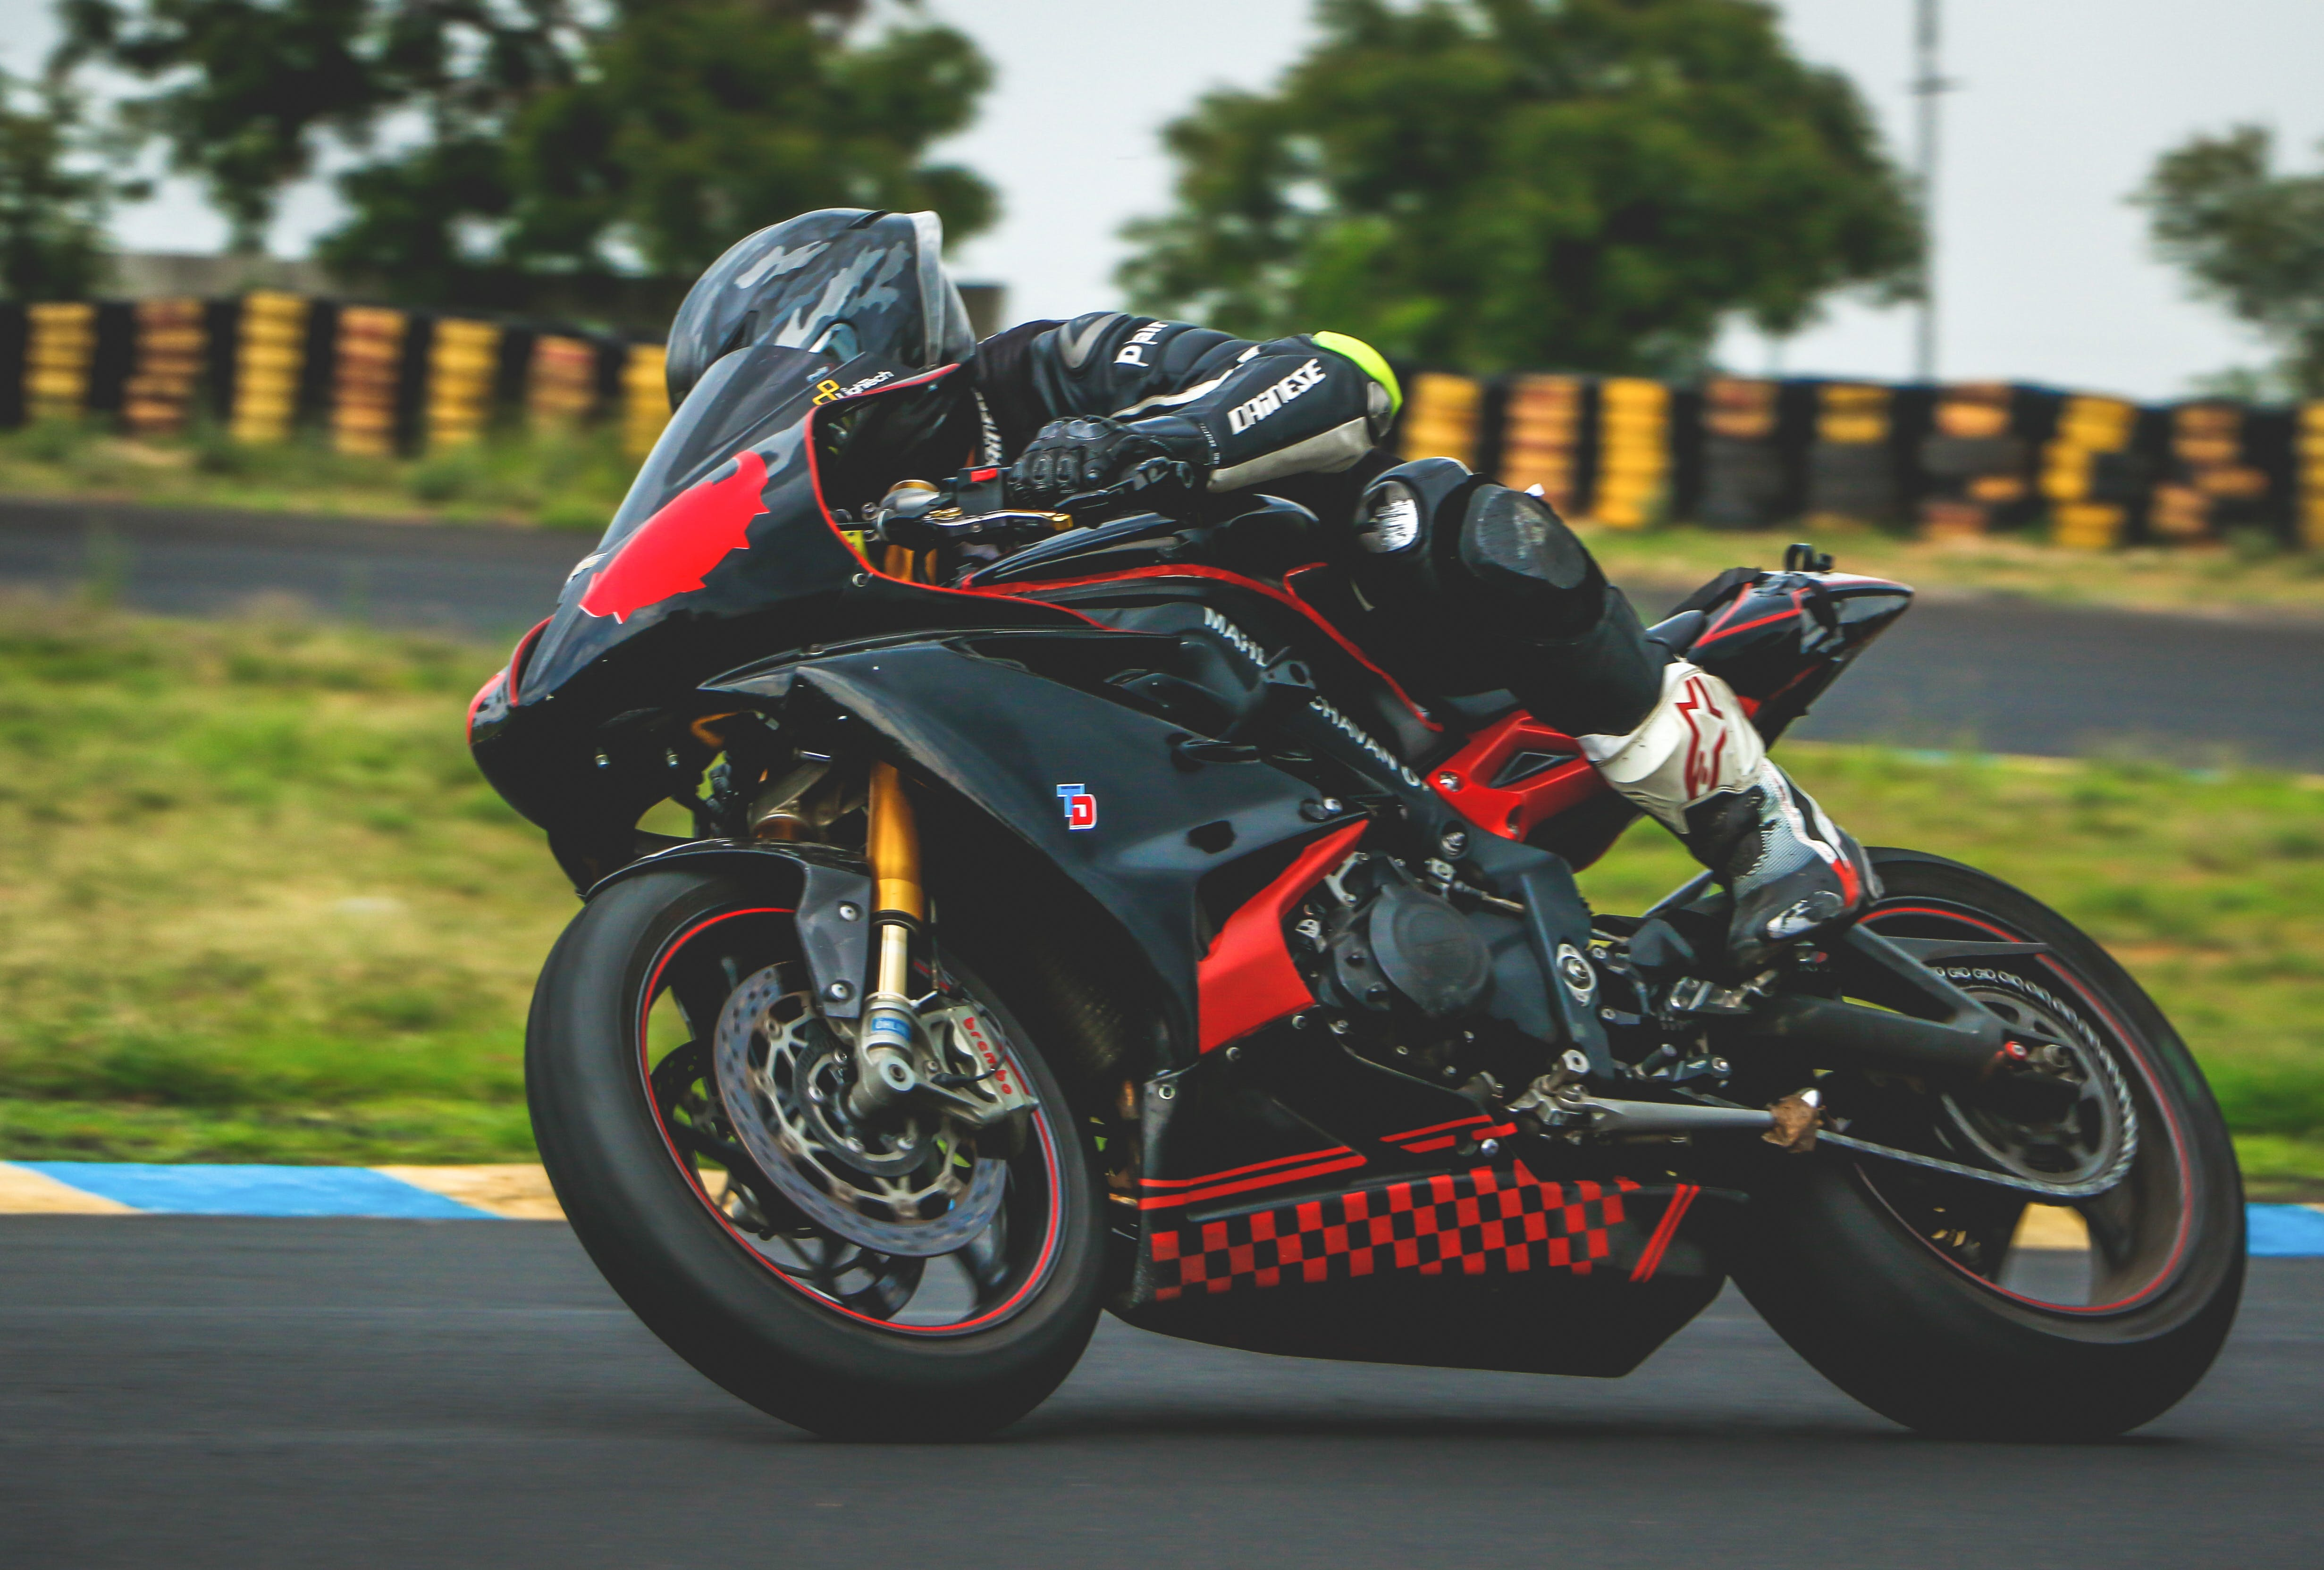 Man With Black Alpinestar Racing Suit Riding Black and Red Sports Bike